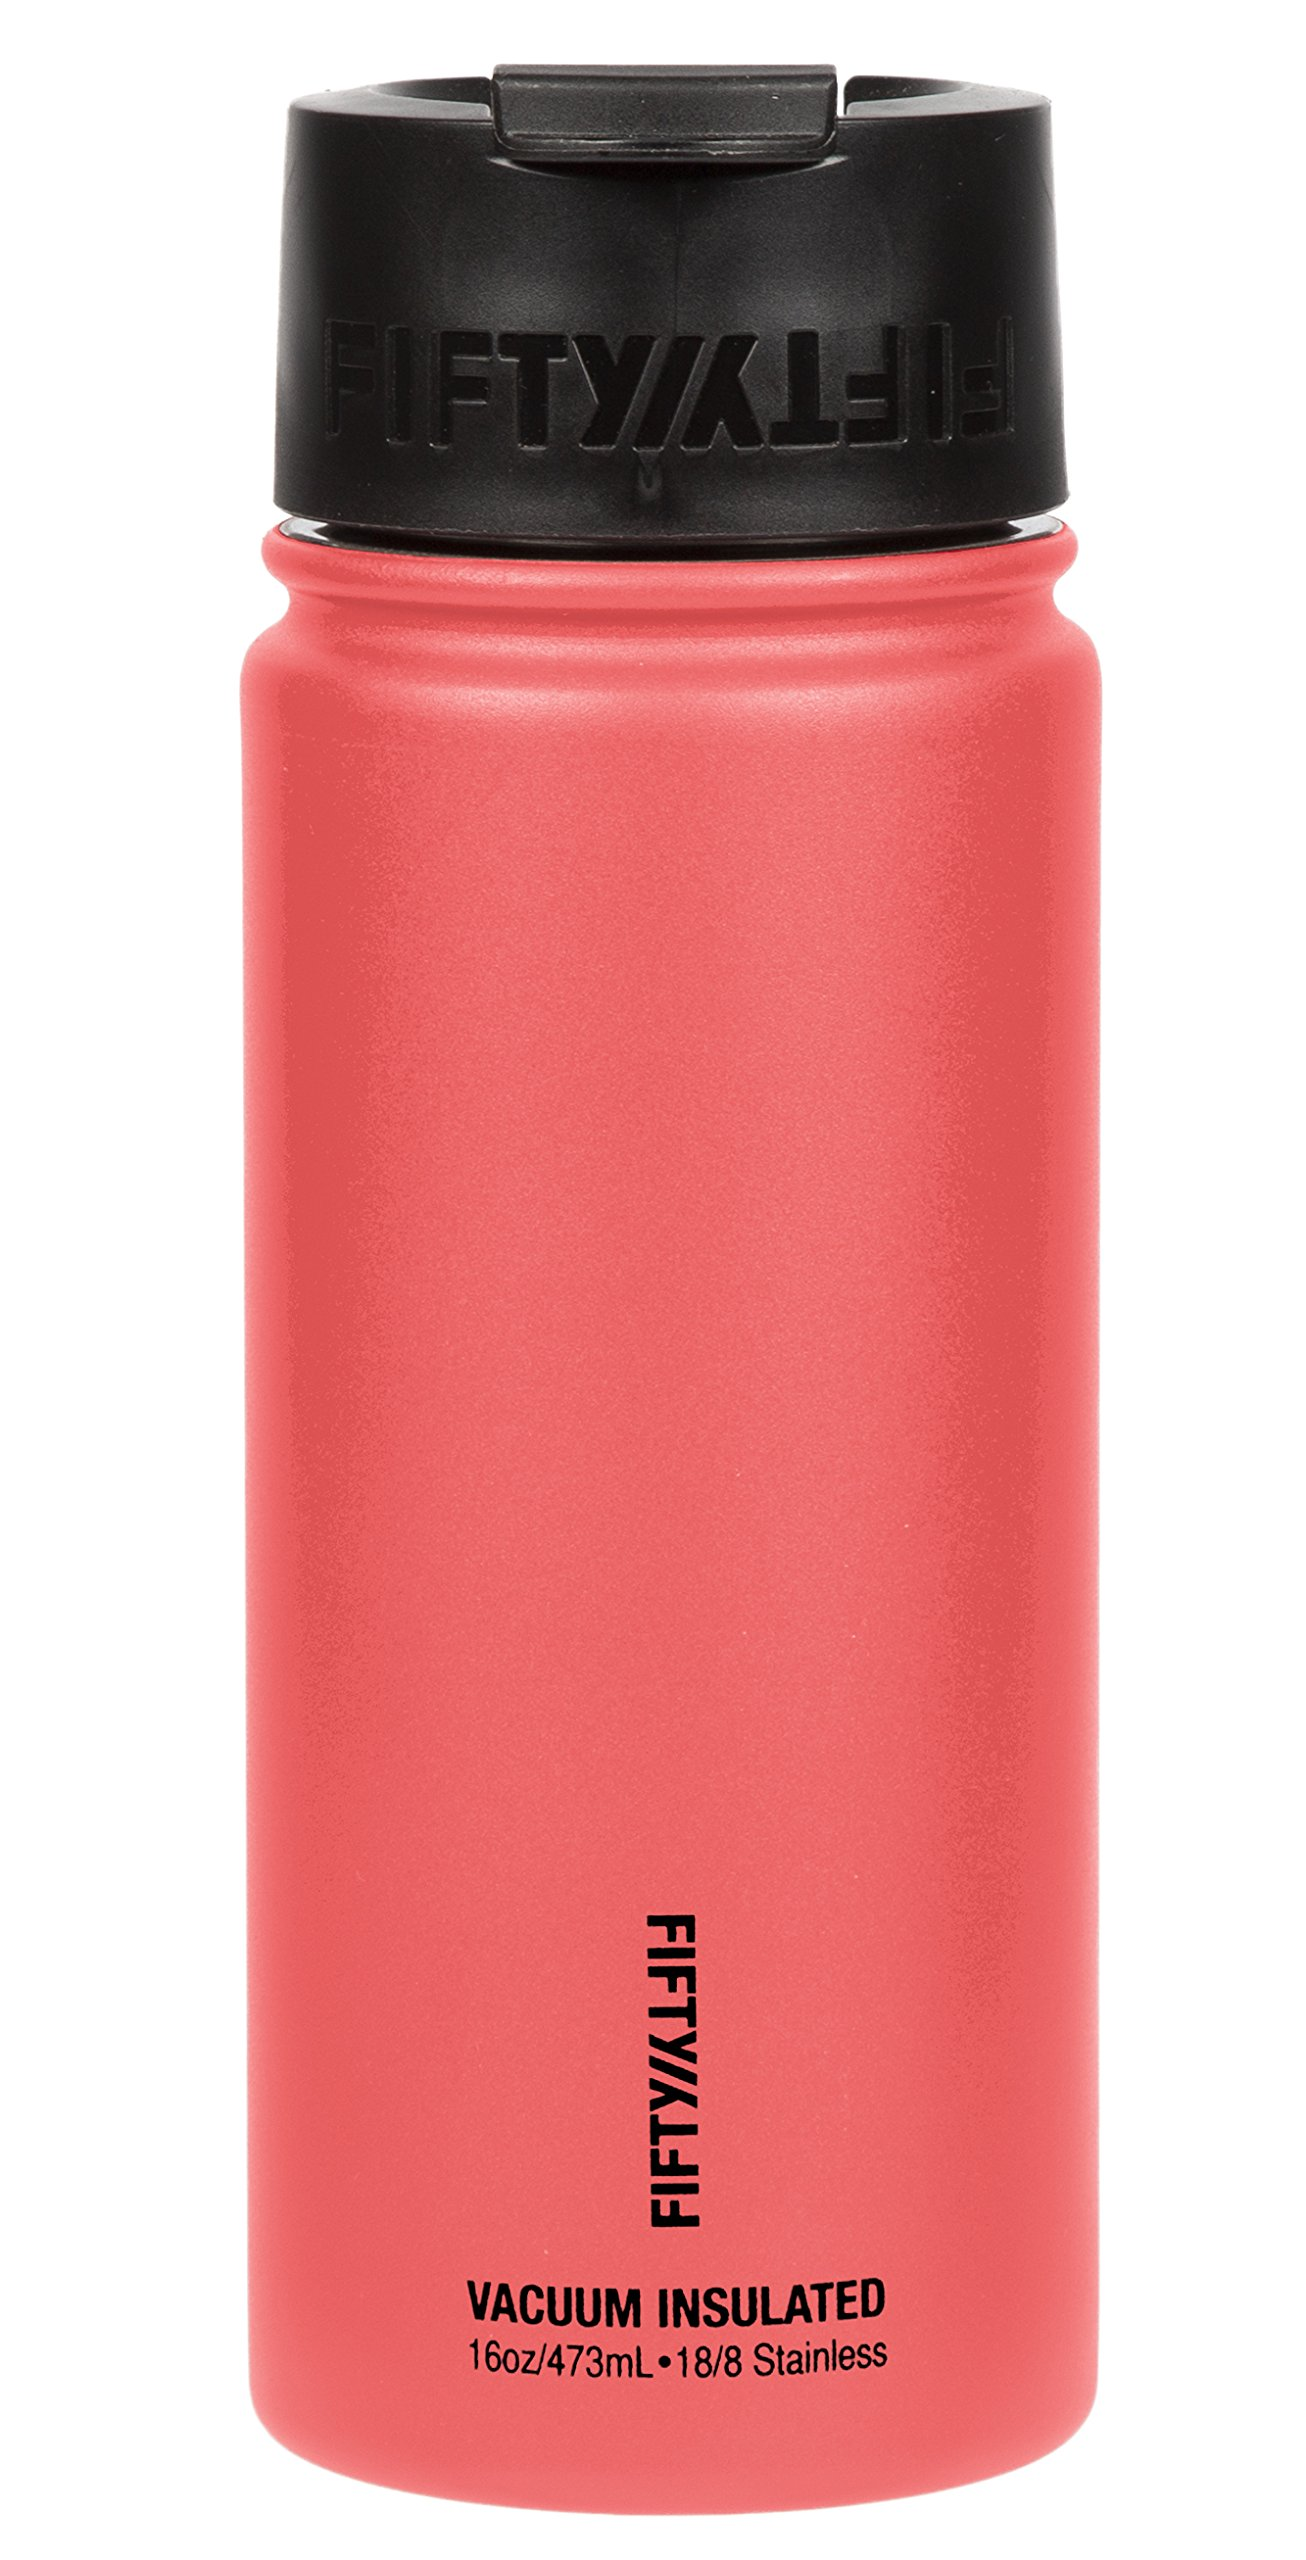 Fifty/Fifty Double Wall Vacuum Insulated 18/8 Stainless Steel, Travel Coffee Mug with Wide Mouth Flip Lid, 16 oz, Coral